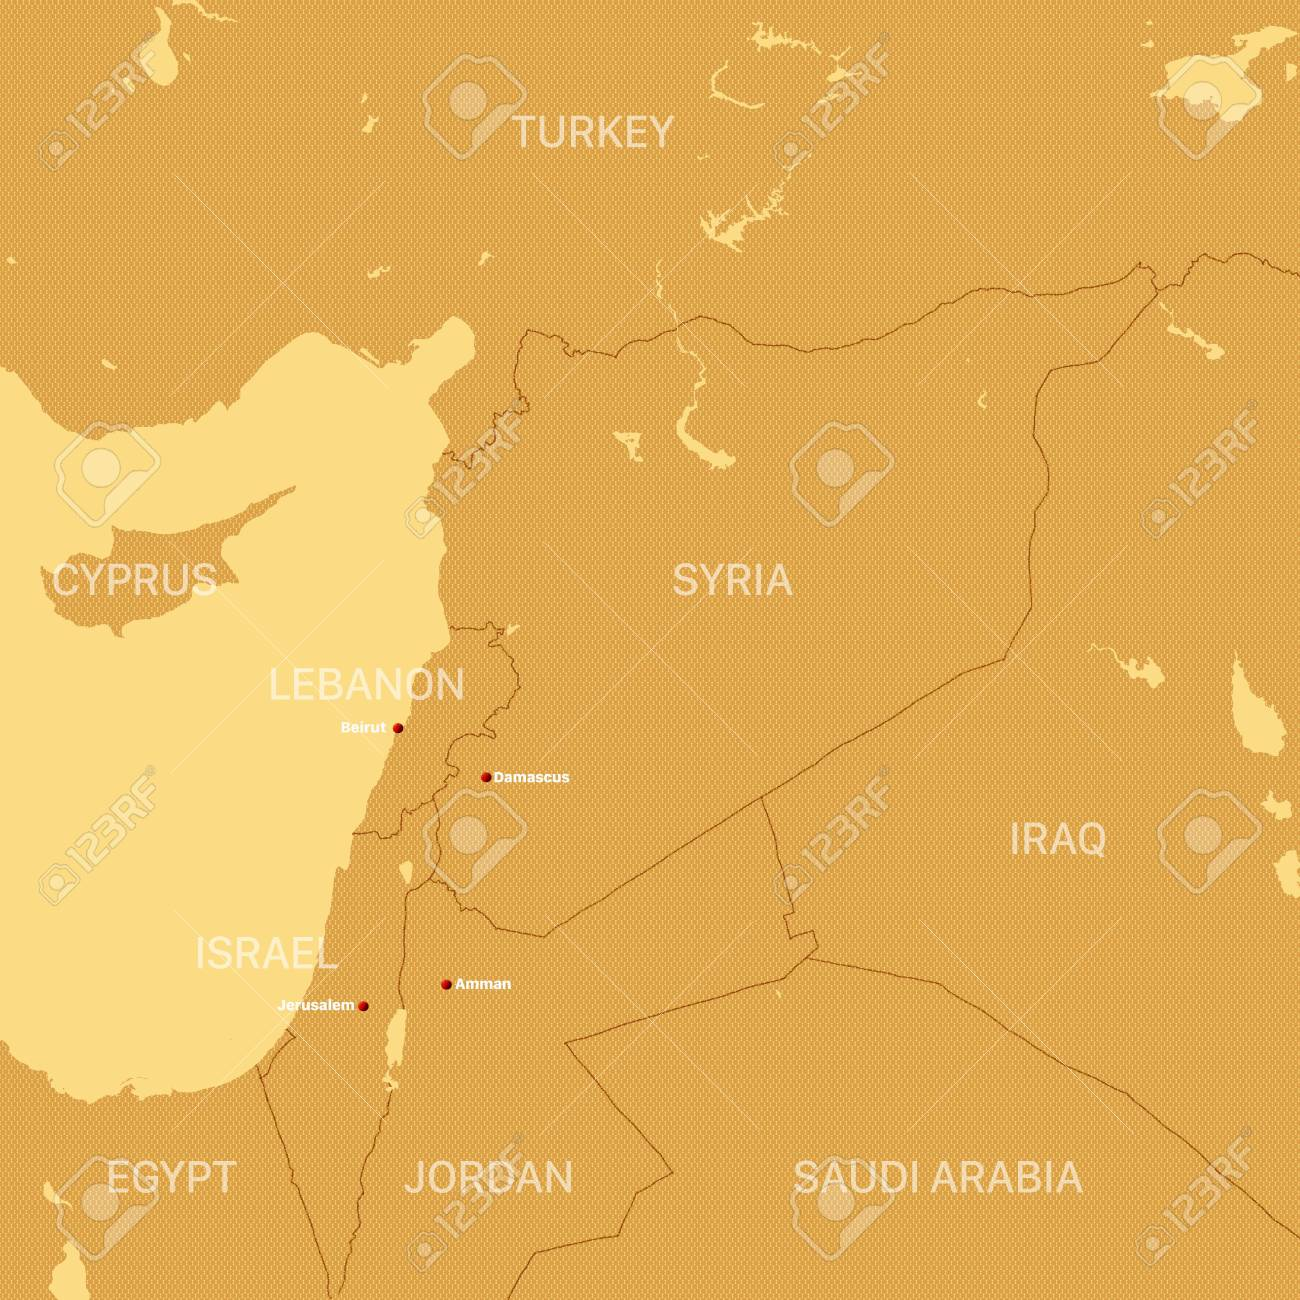 Middle East Map Arabian Peninsula.Map Of Syria And Borders Physical Map Middle East Arabian